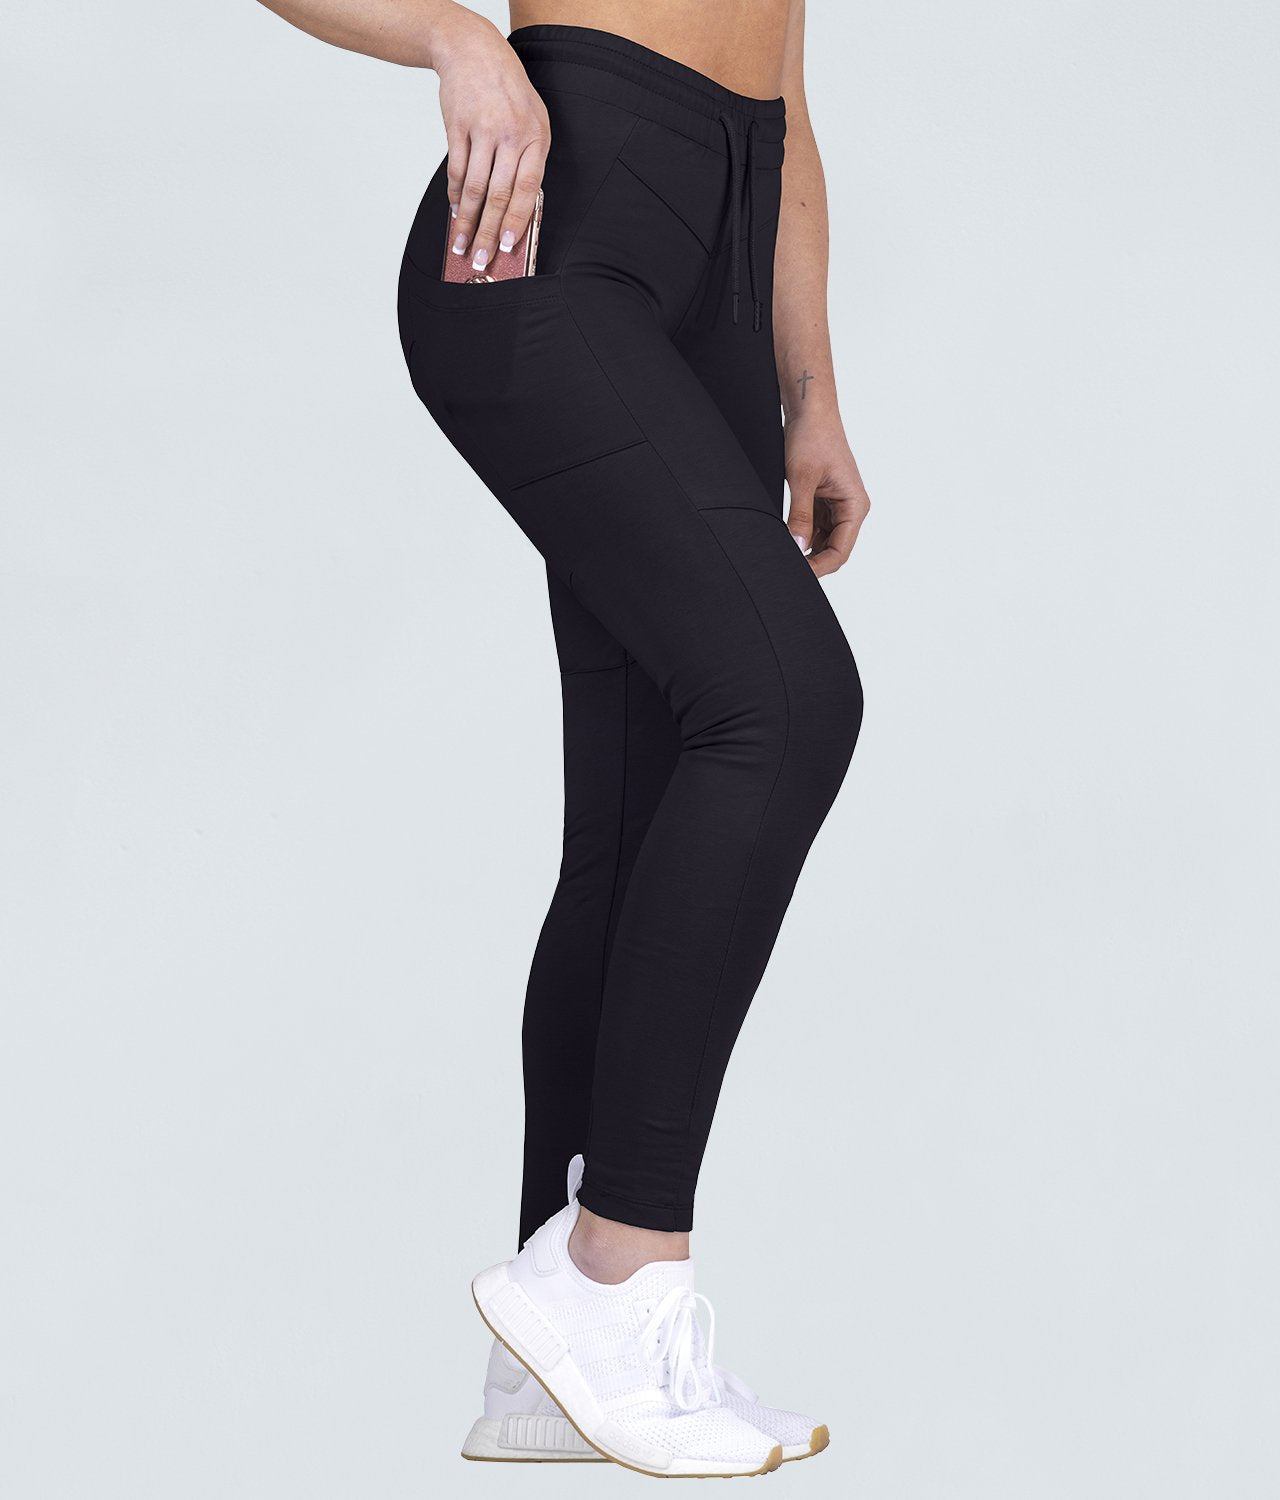 Born Tough Contoured Contoured Fit Black Crossfit Tracksuit Jogger Leggings for Women